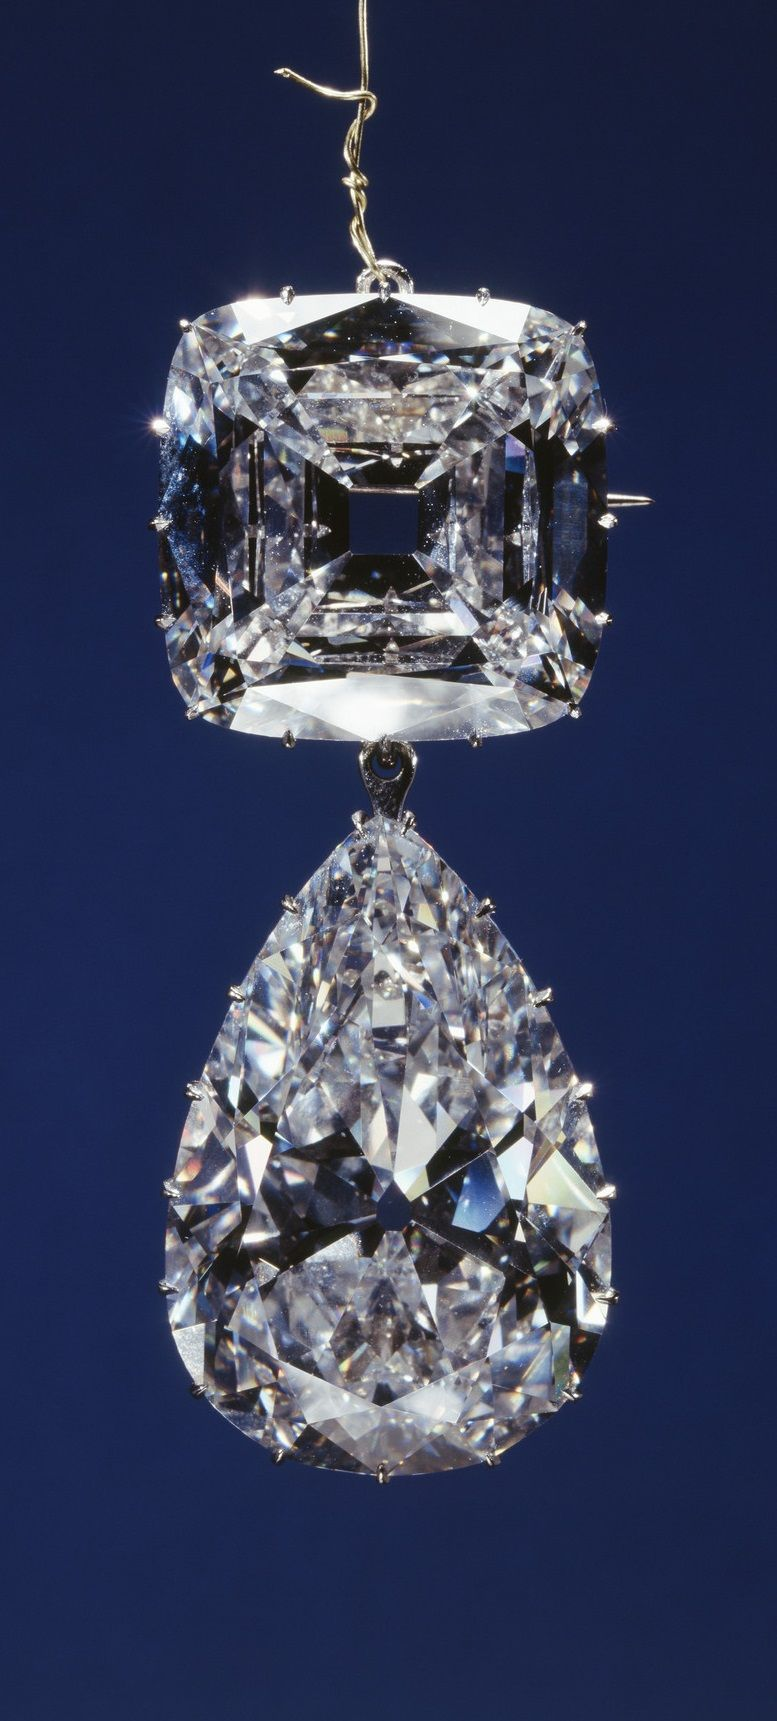 JOSEPH ASSCHER AND CO. Cullinan III and IV brooch, 1908